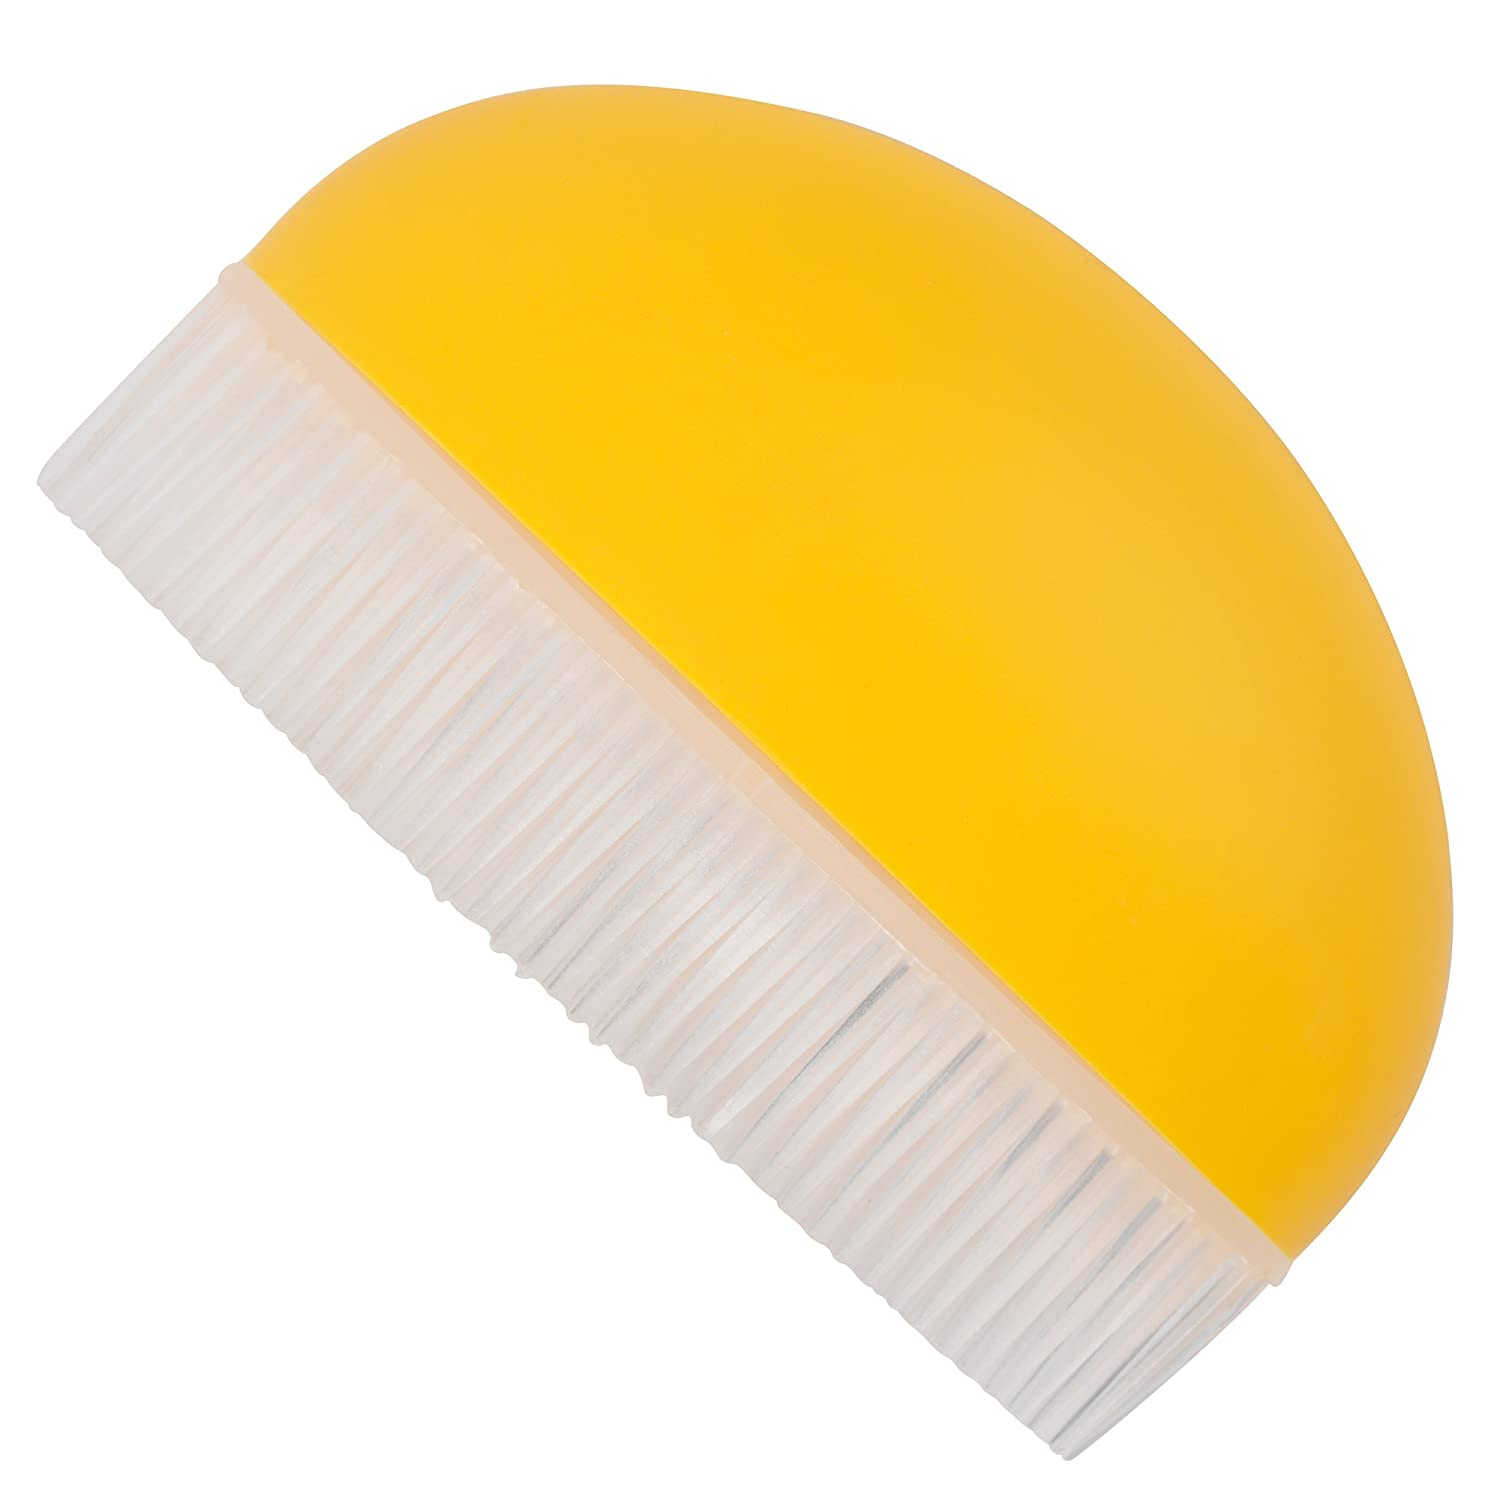 PROfreshionals Corn Brush with Soft Bristles 72007